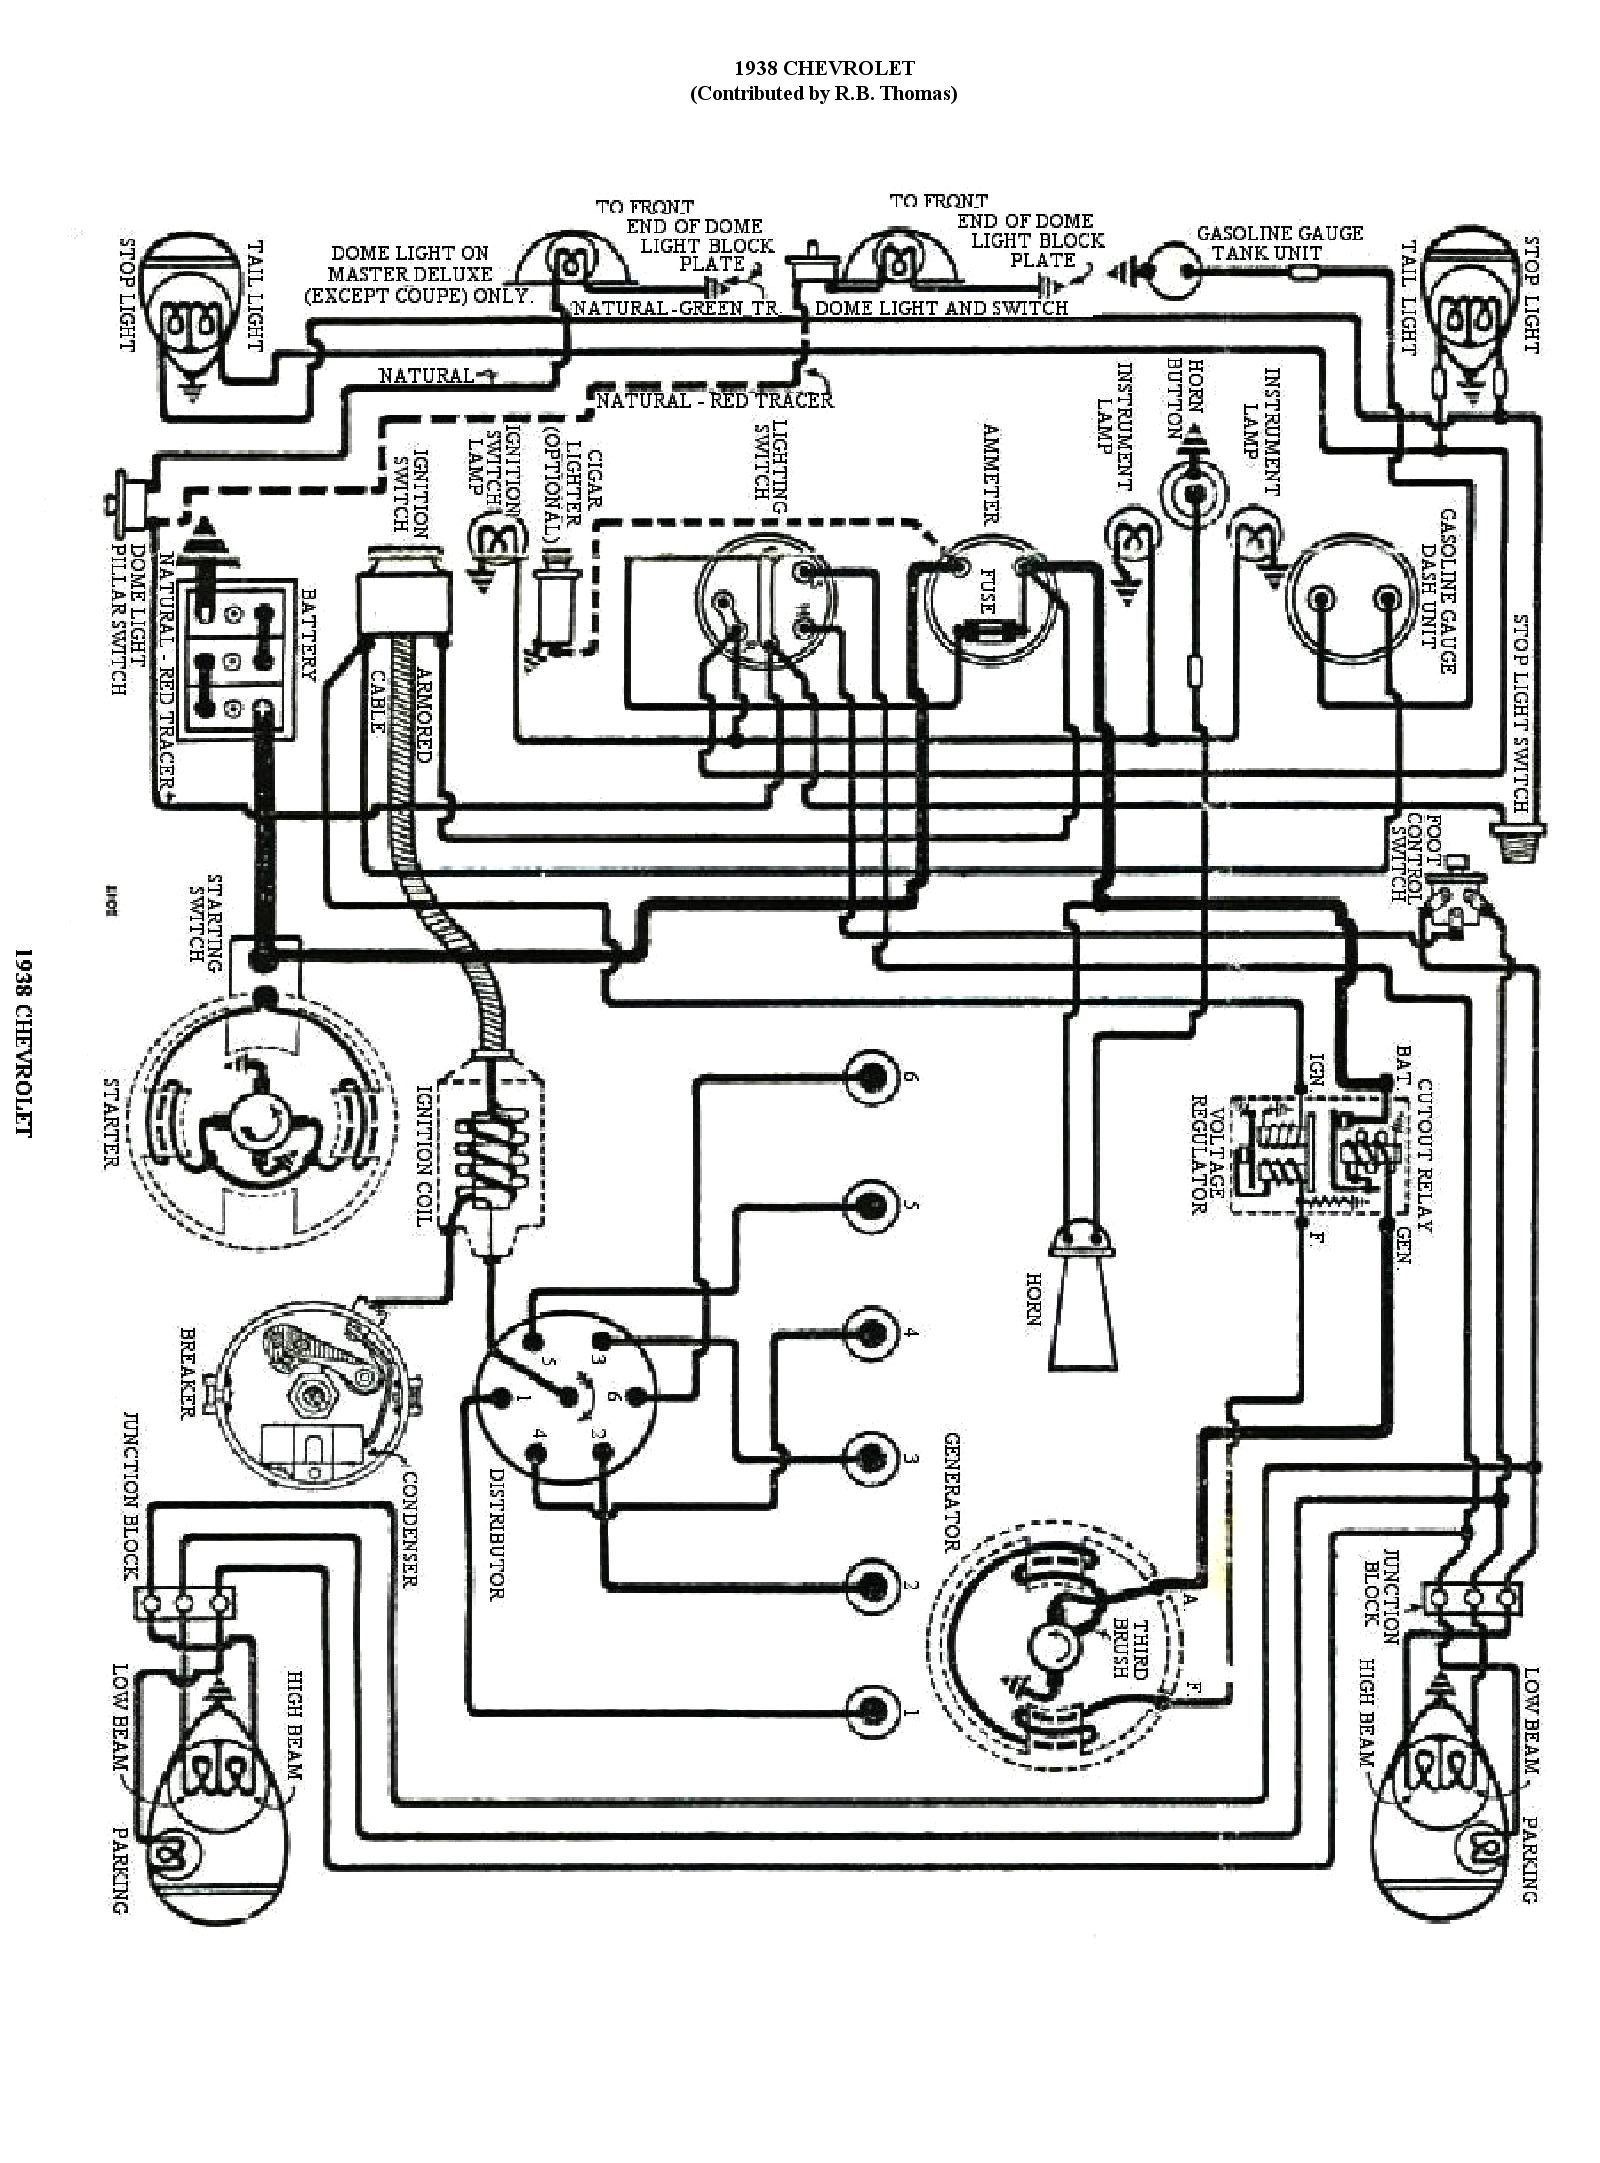 Chevy Truck Radio Diagram